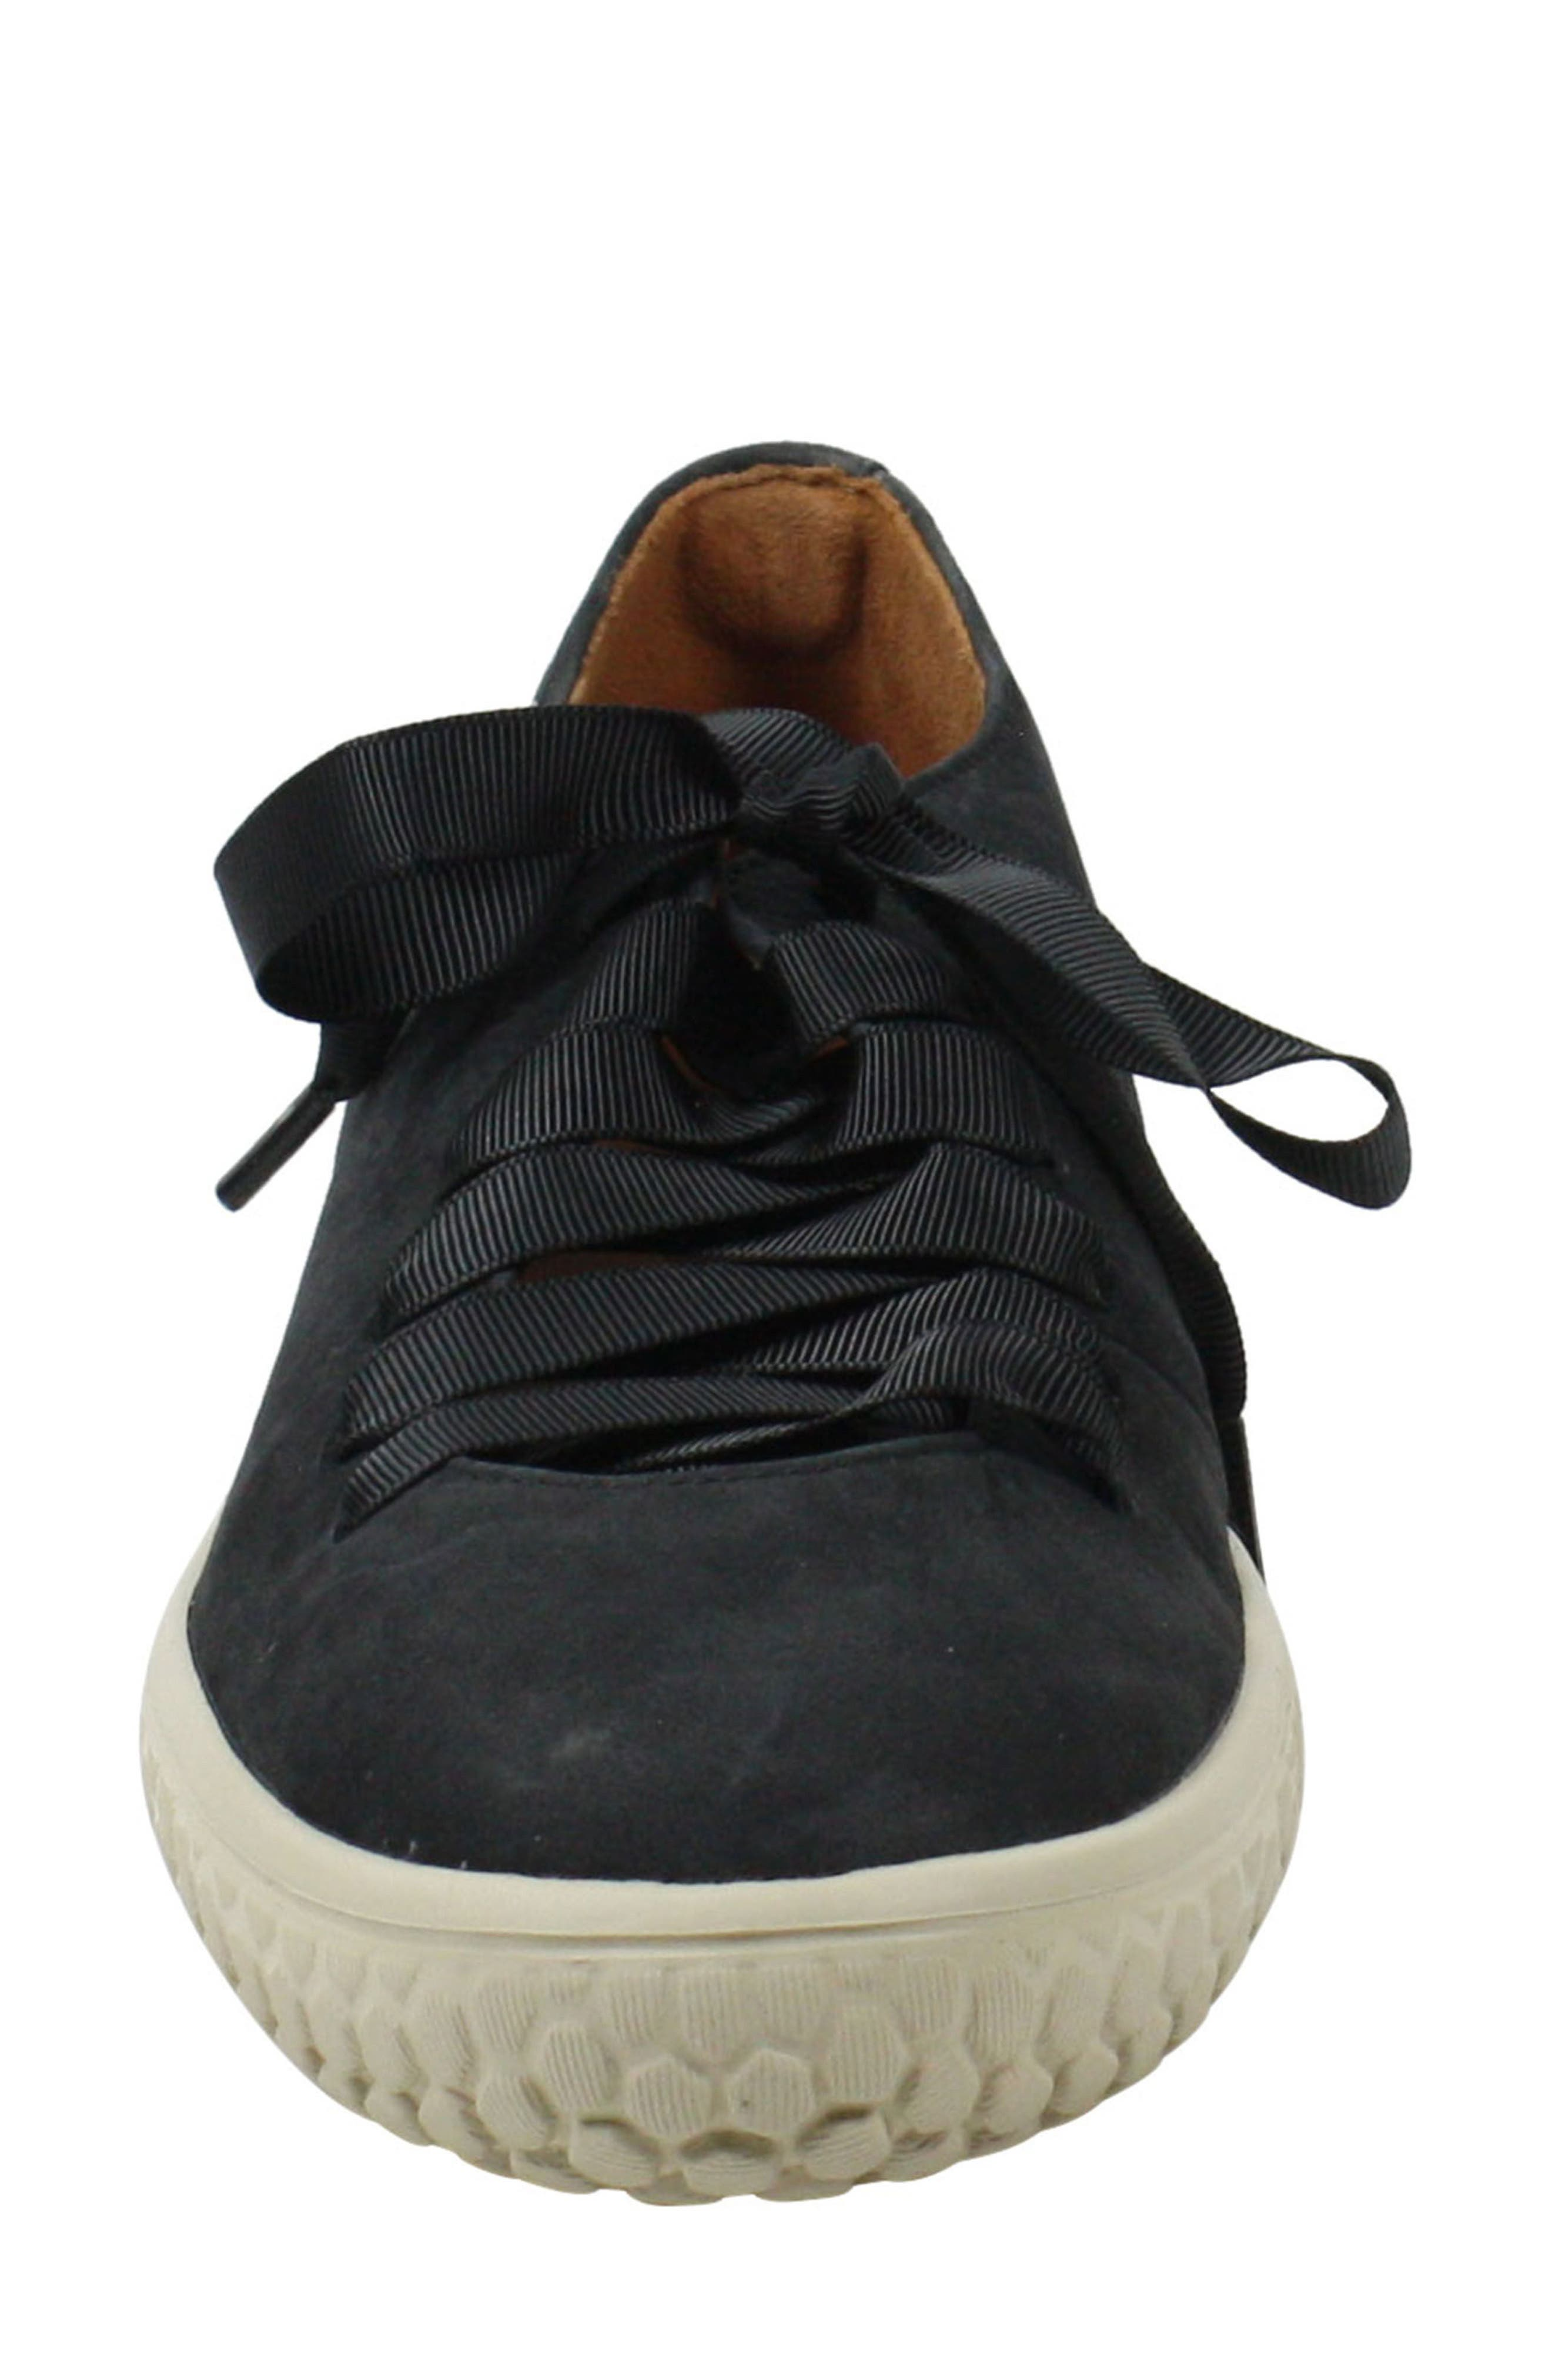 Zaheera Sneaker,                             Alternate thumbnail 4, color,                             Black Nubuck Leather